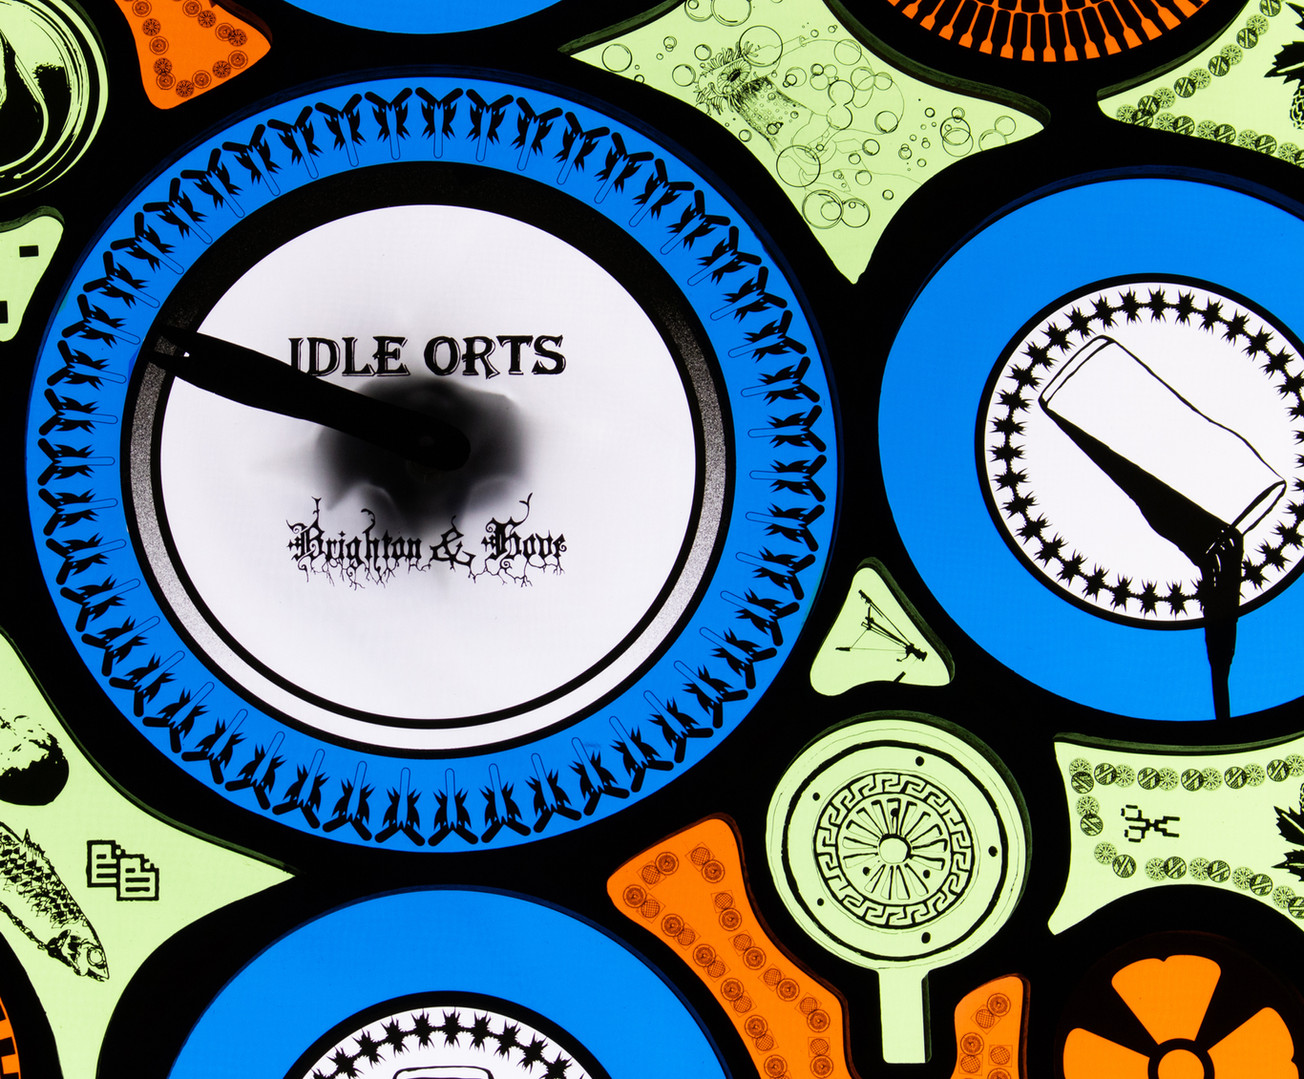 IDLE ORTS (2019) - detail